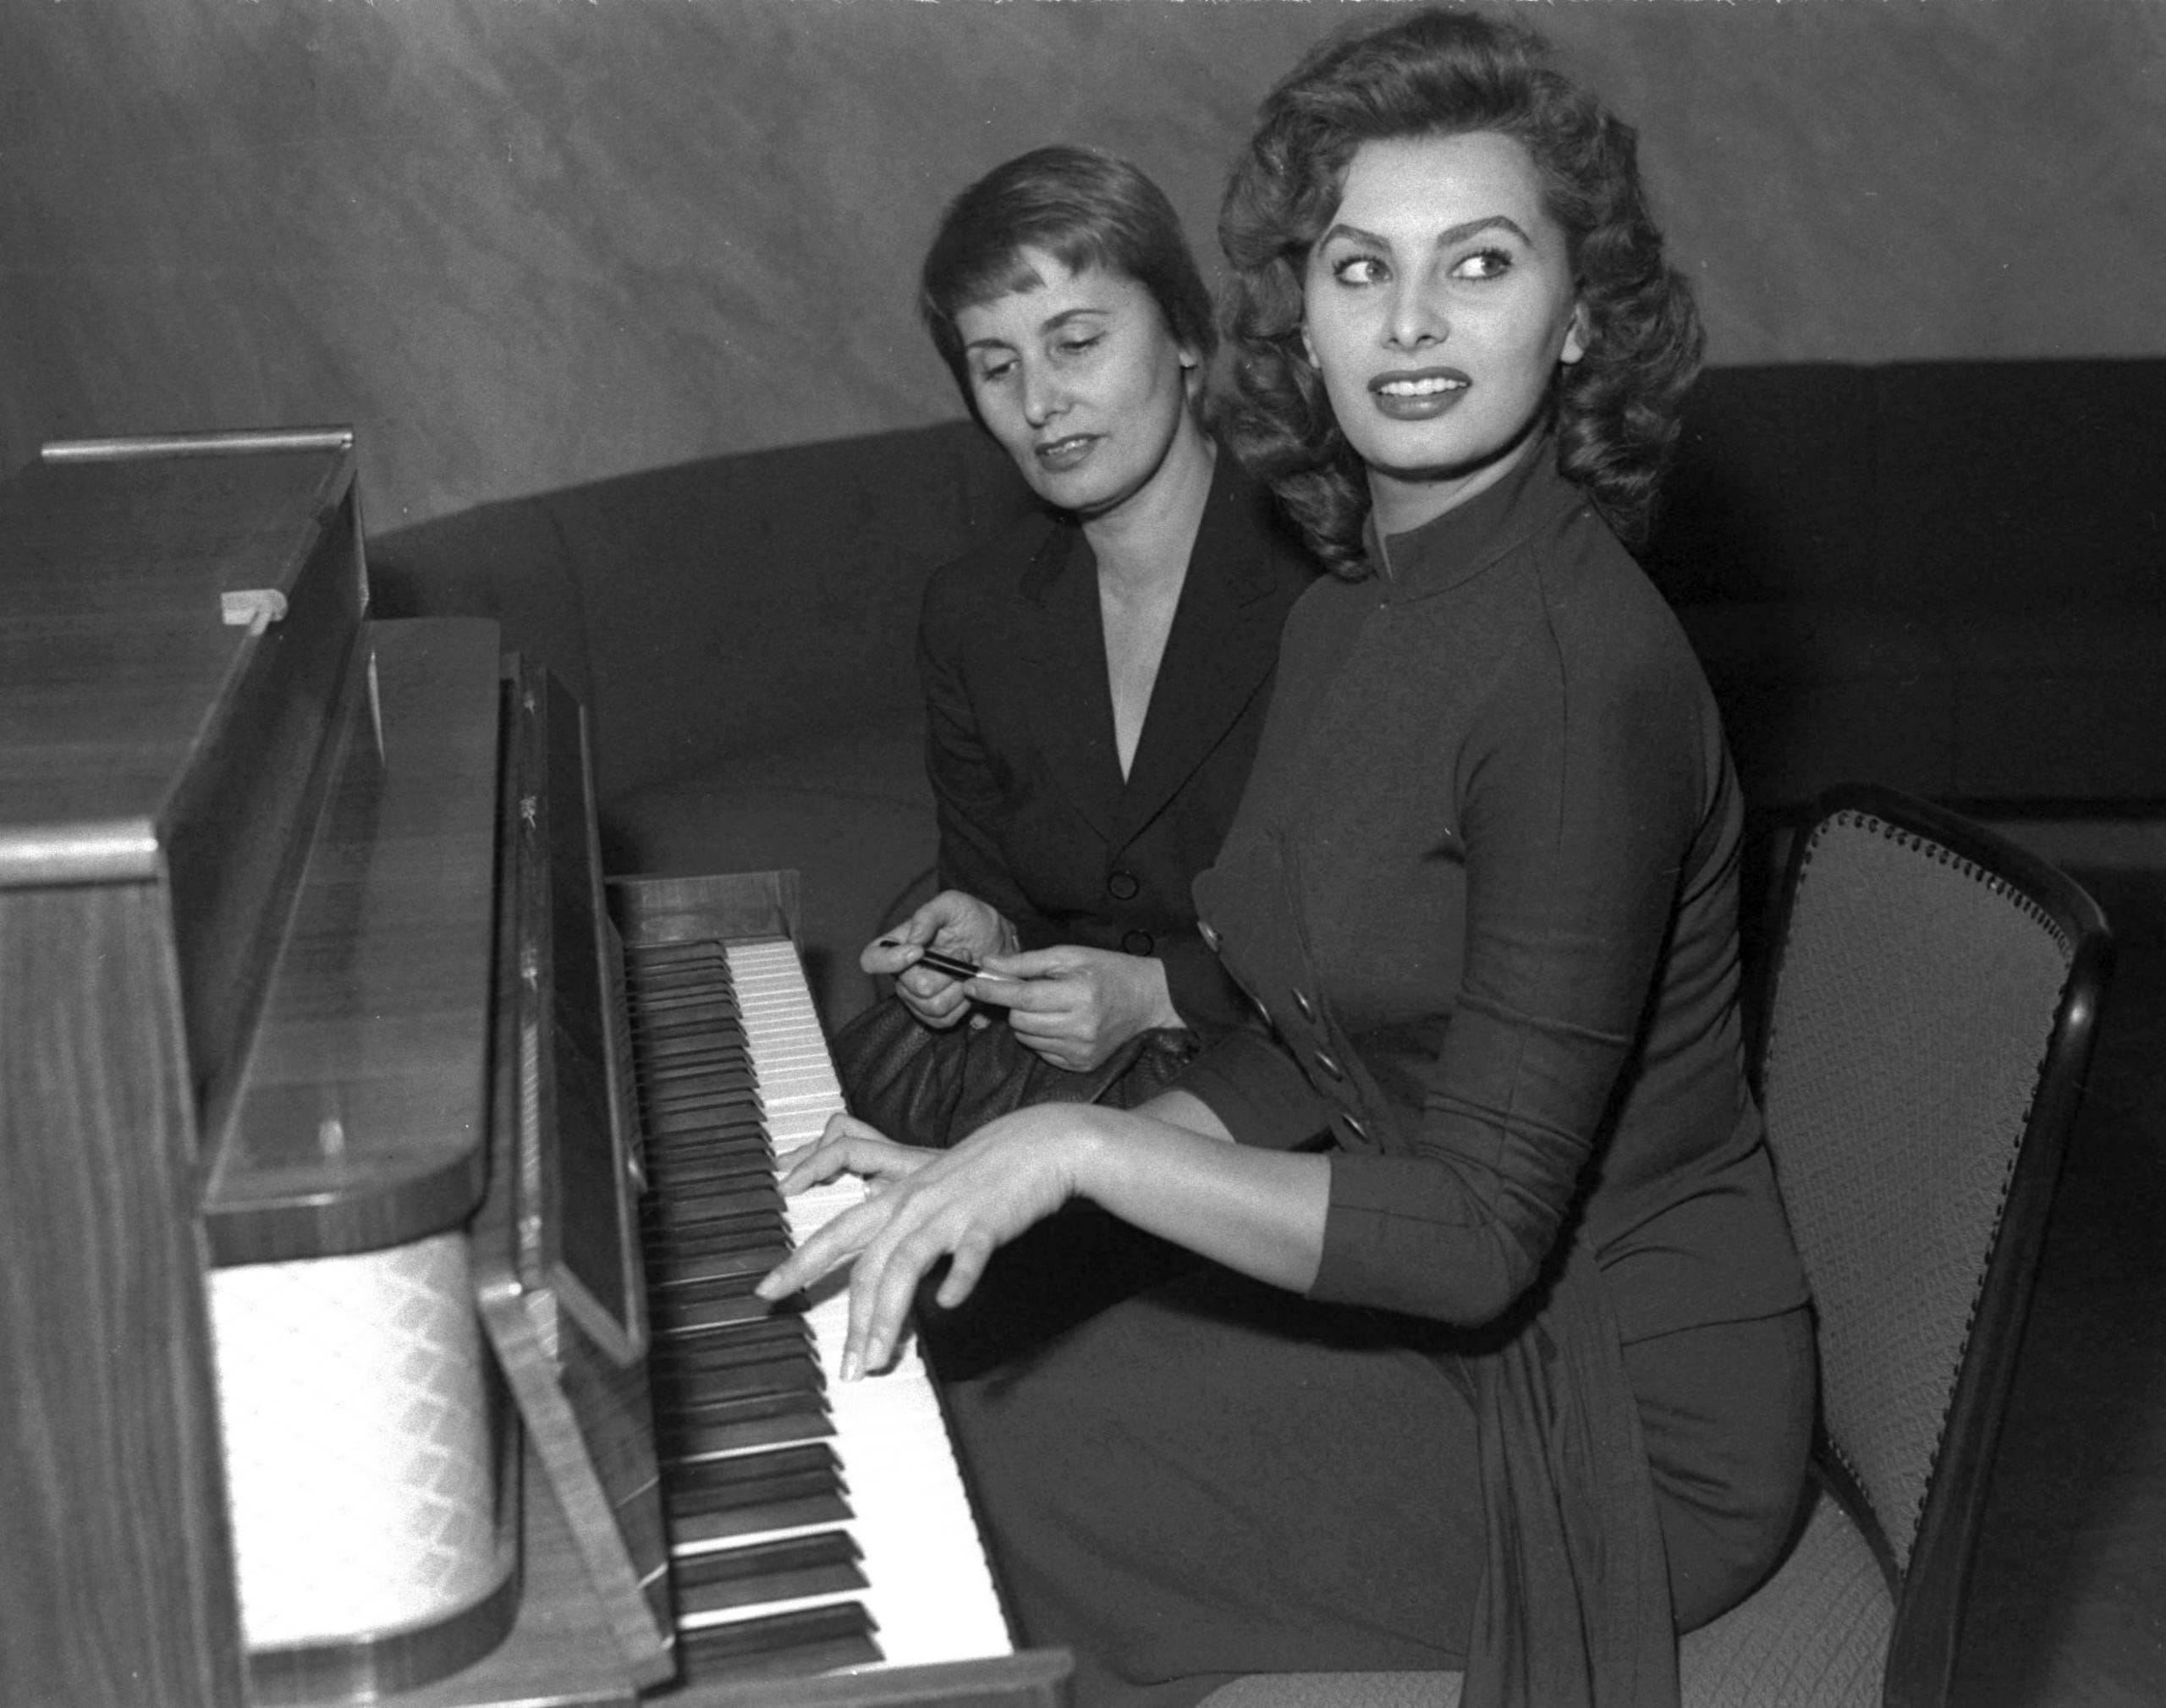 Italian actress Sophia Loren turns 85 on Sept. 20, 2019. She is the only one of the American Film Institute's 25 female greatest screen legends who is still alive. Here, Loren plays piano after a press conference in Munich, Germany, on Feb. 10, 1955. Behind her is her mother, Romilda Villani.